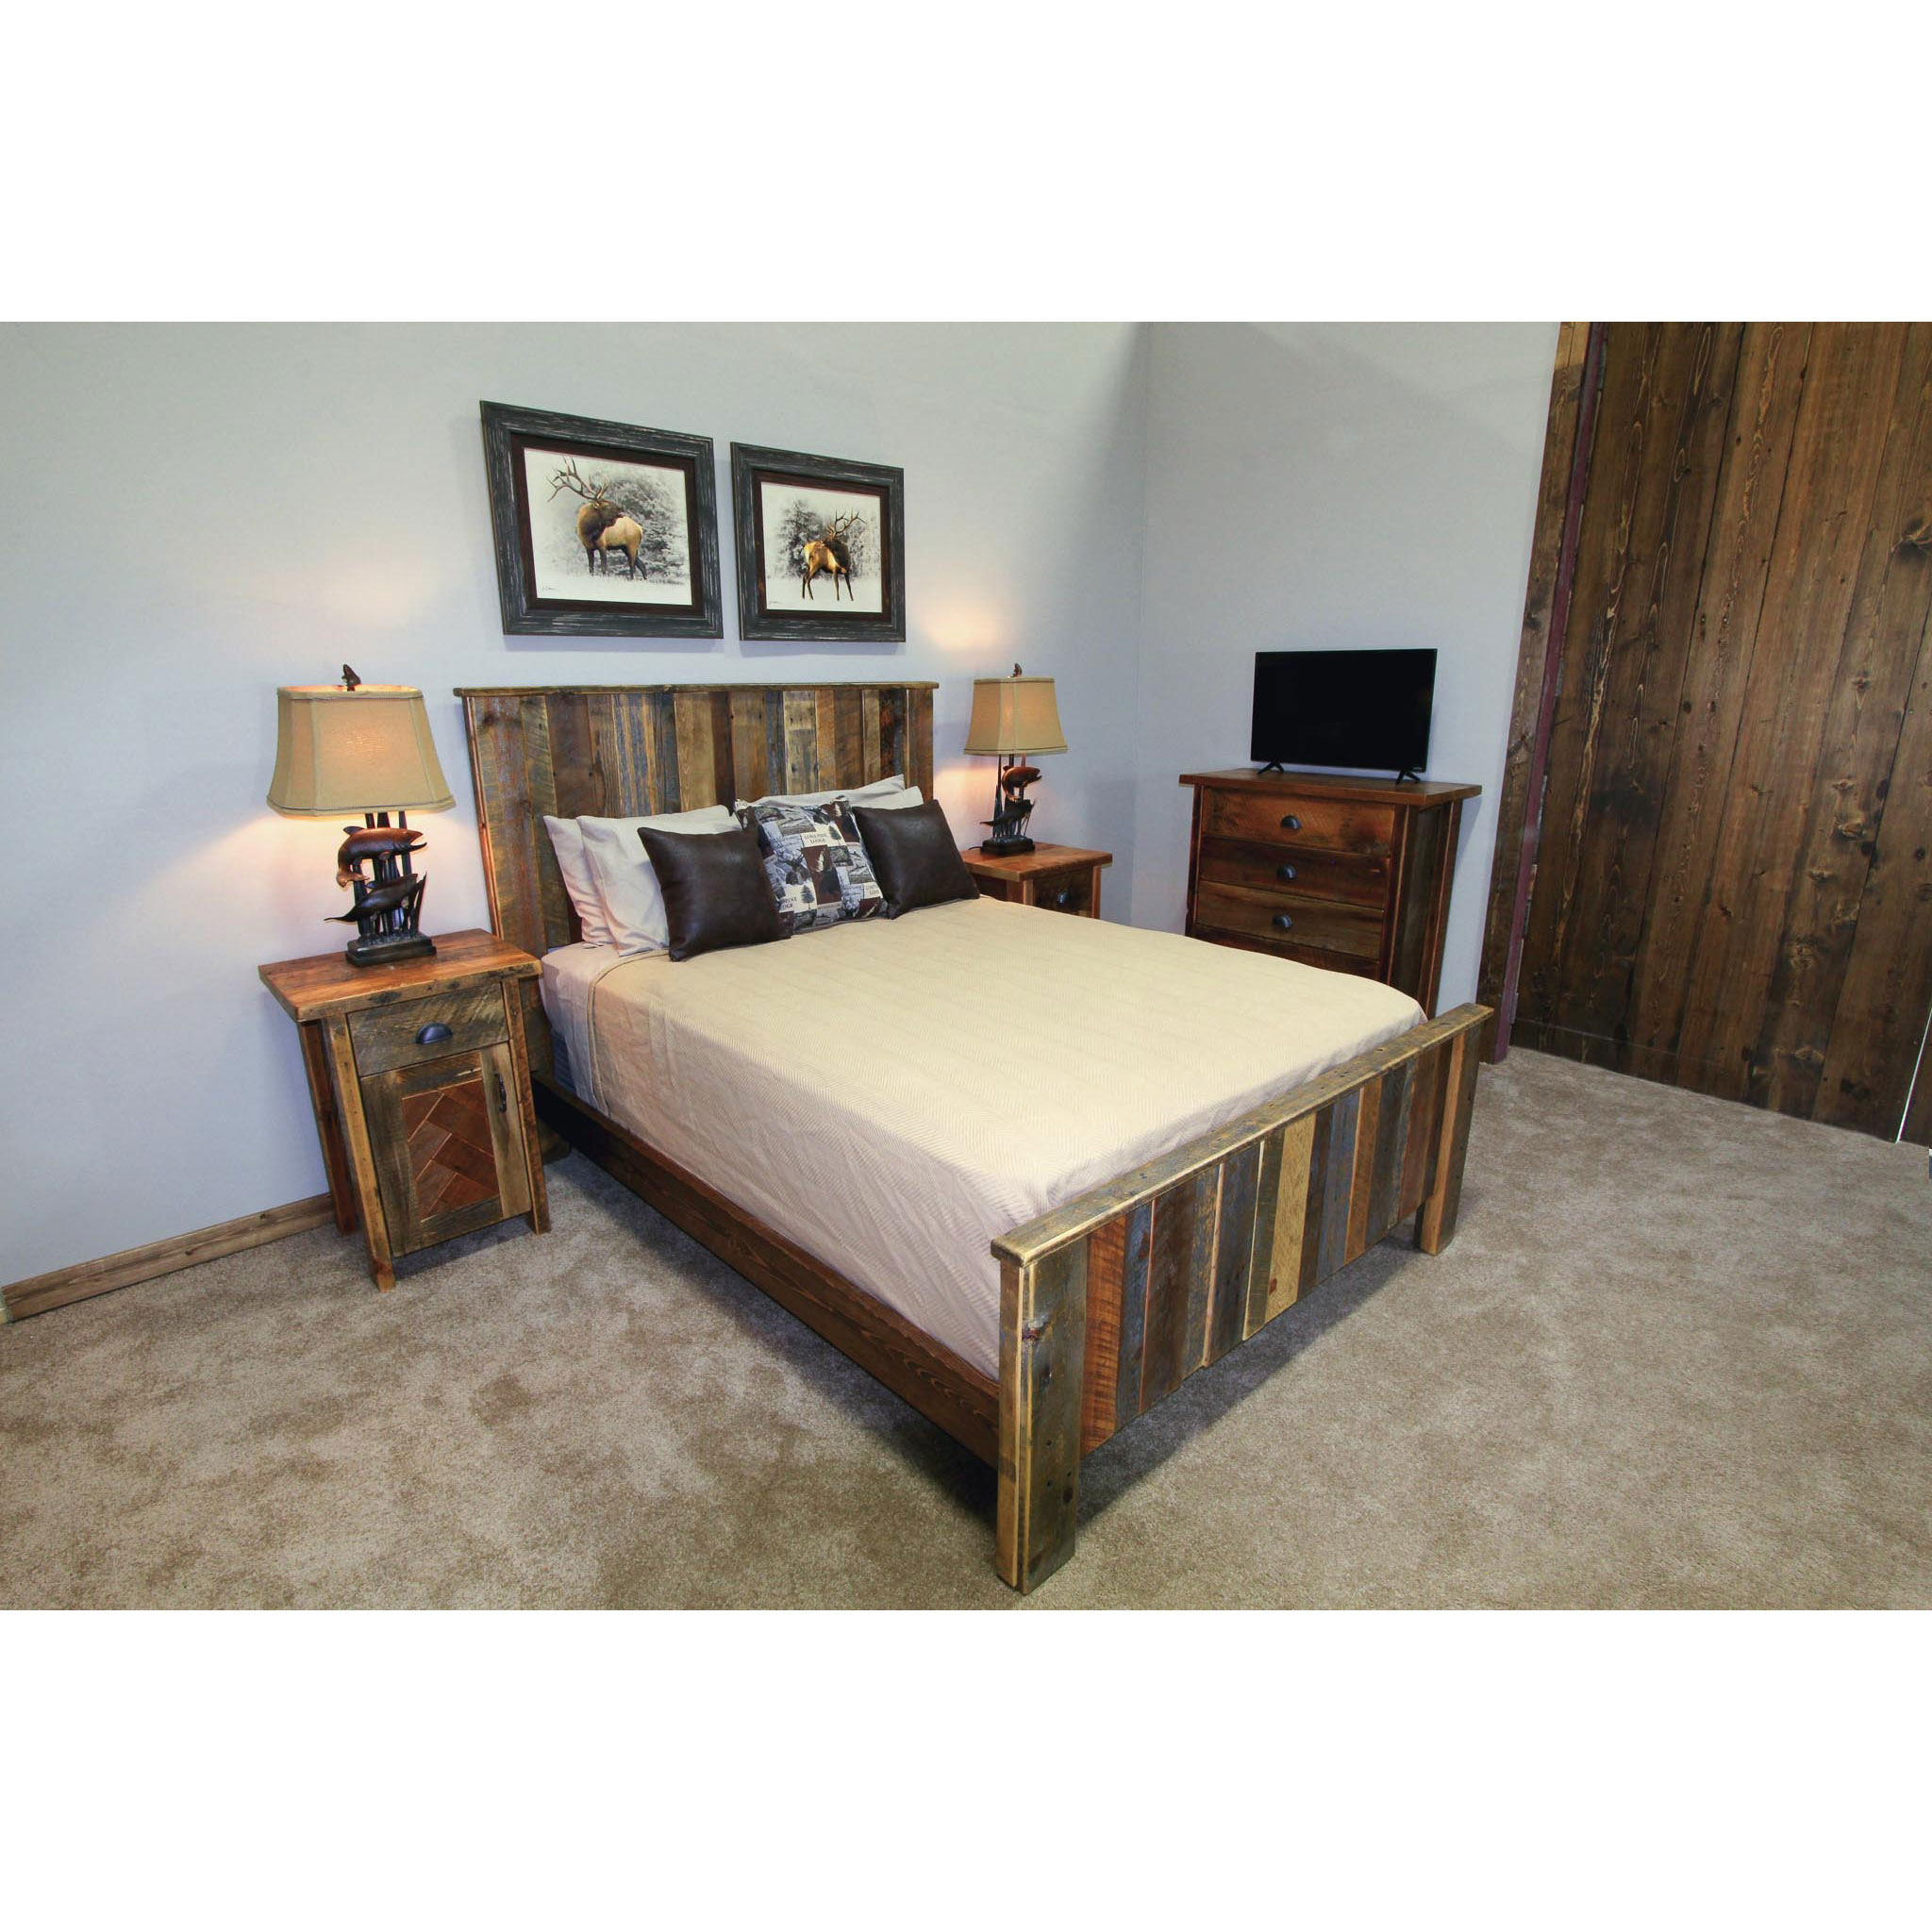 yellowstone  This bed is made of reclaimed vertical plank barnwood.